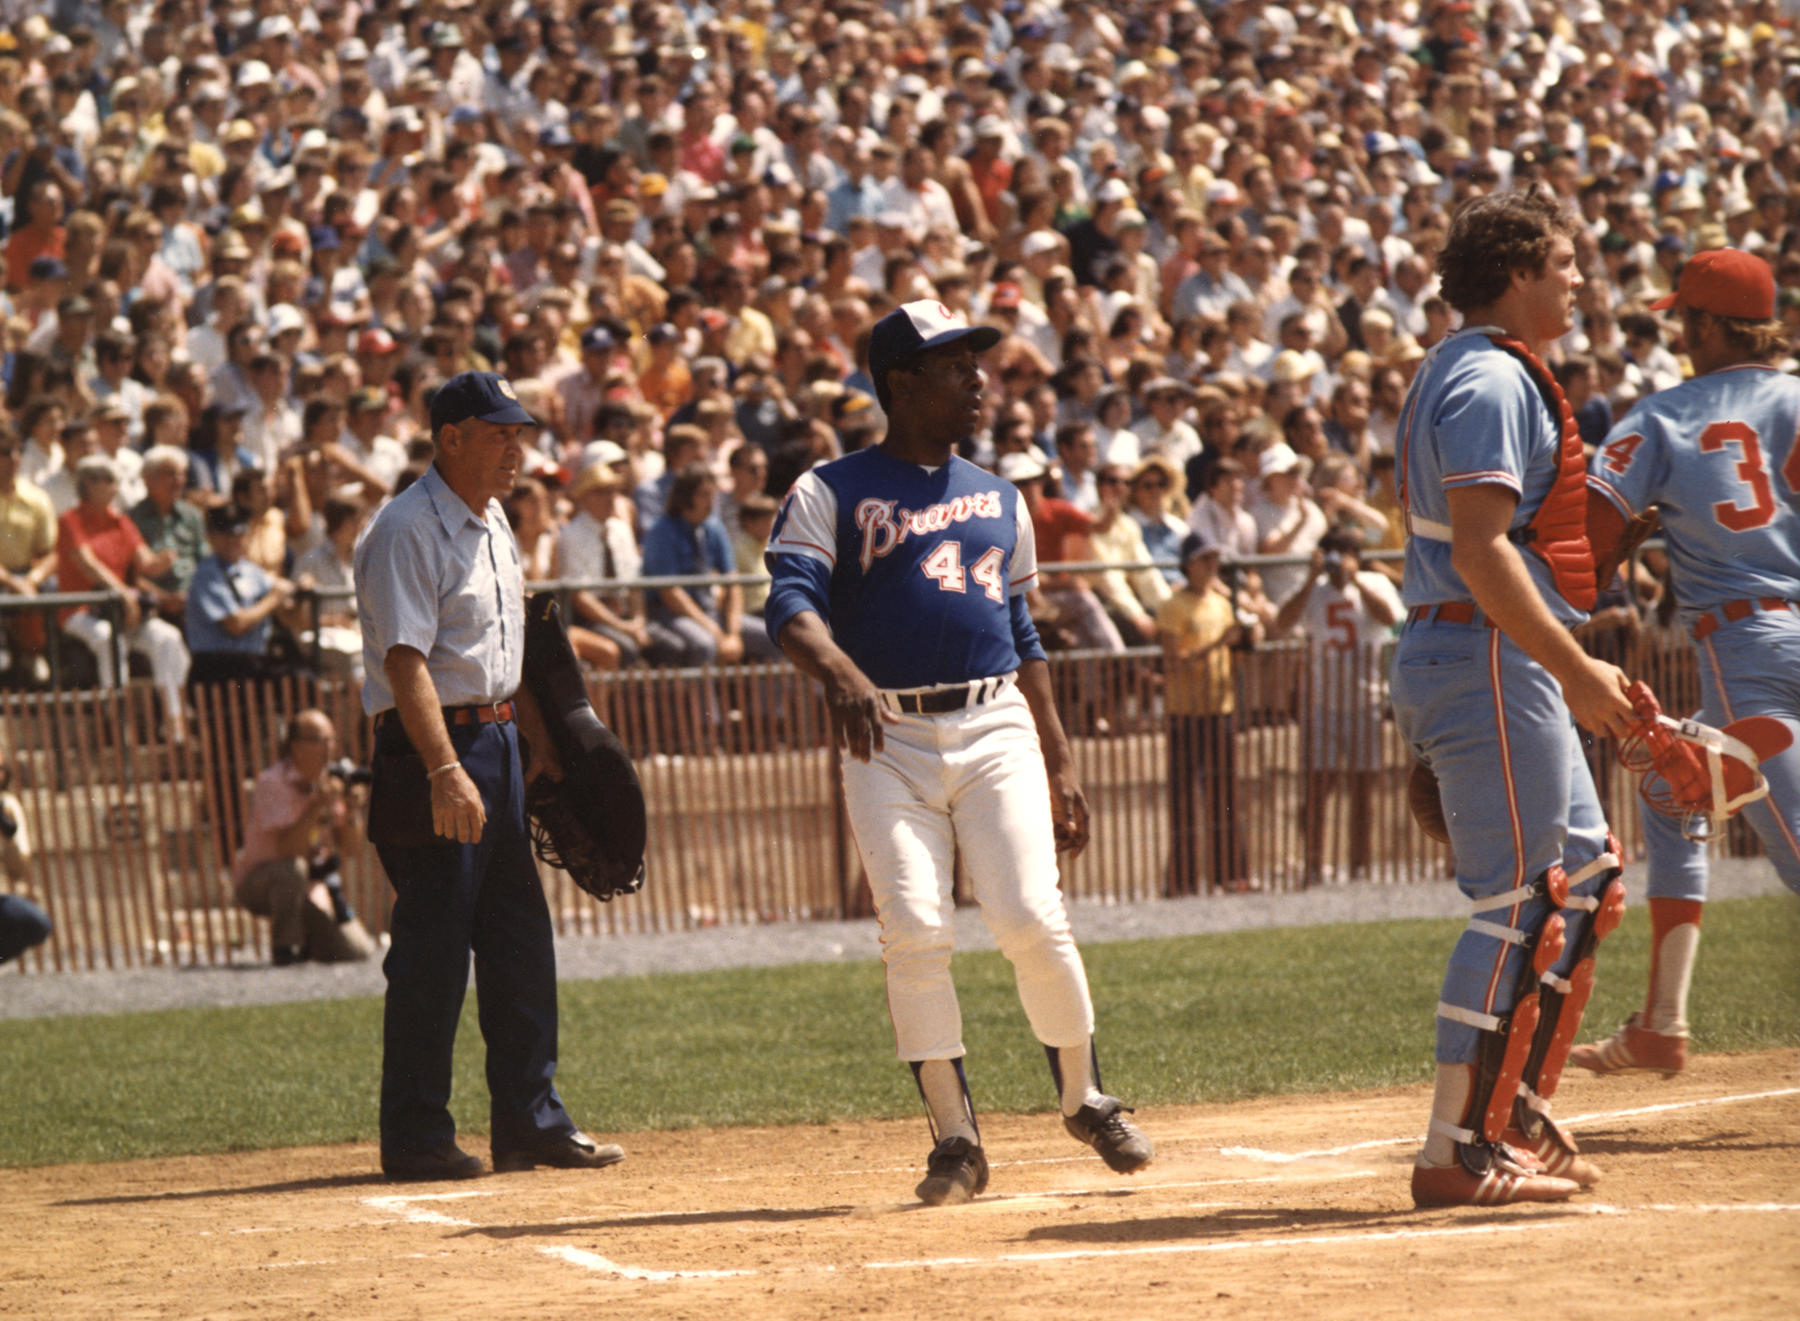 Hank Aaron crosses home plate for the Atlanta Braves against the Chicago White Sox during the Hall of Fame Game on Aug. 12, 1974 at Doubleday Field. (National Baseball Hall of Fame Library)